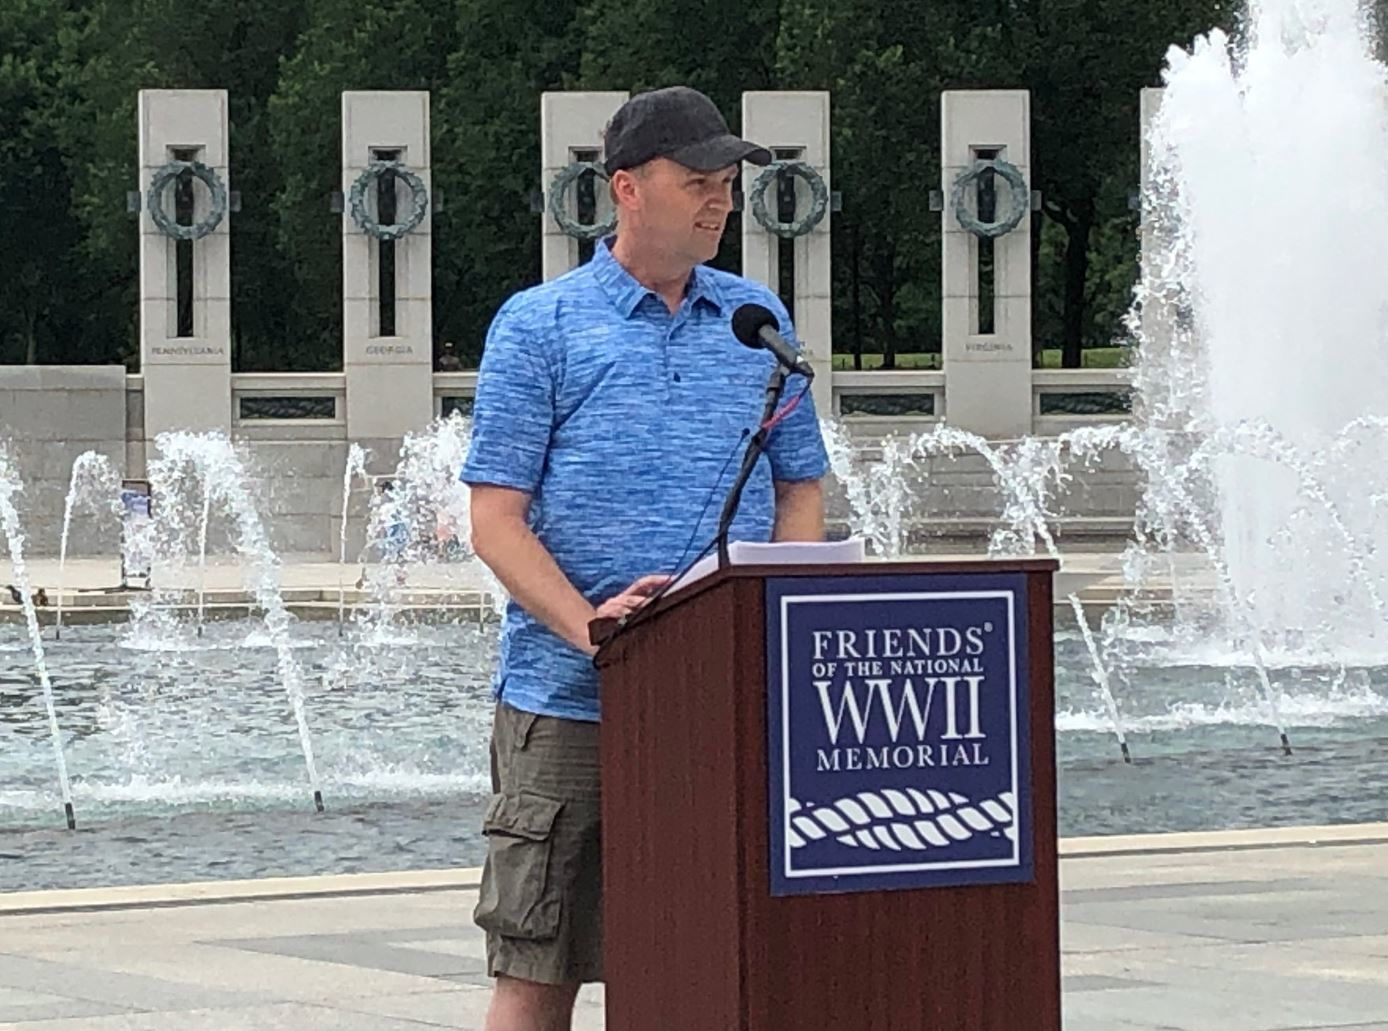 Greg Clawson, from Roseville, California, is visiting the D.C. area with his family. When they arrived at the memorial and saw what was going on, Clawson chose to add his voice. (WTOP/Michelle Basch)